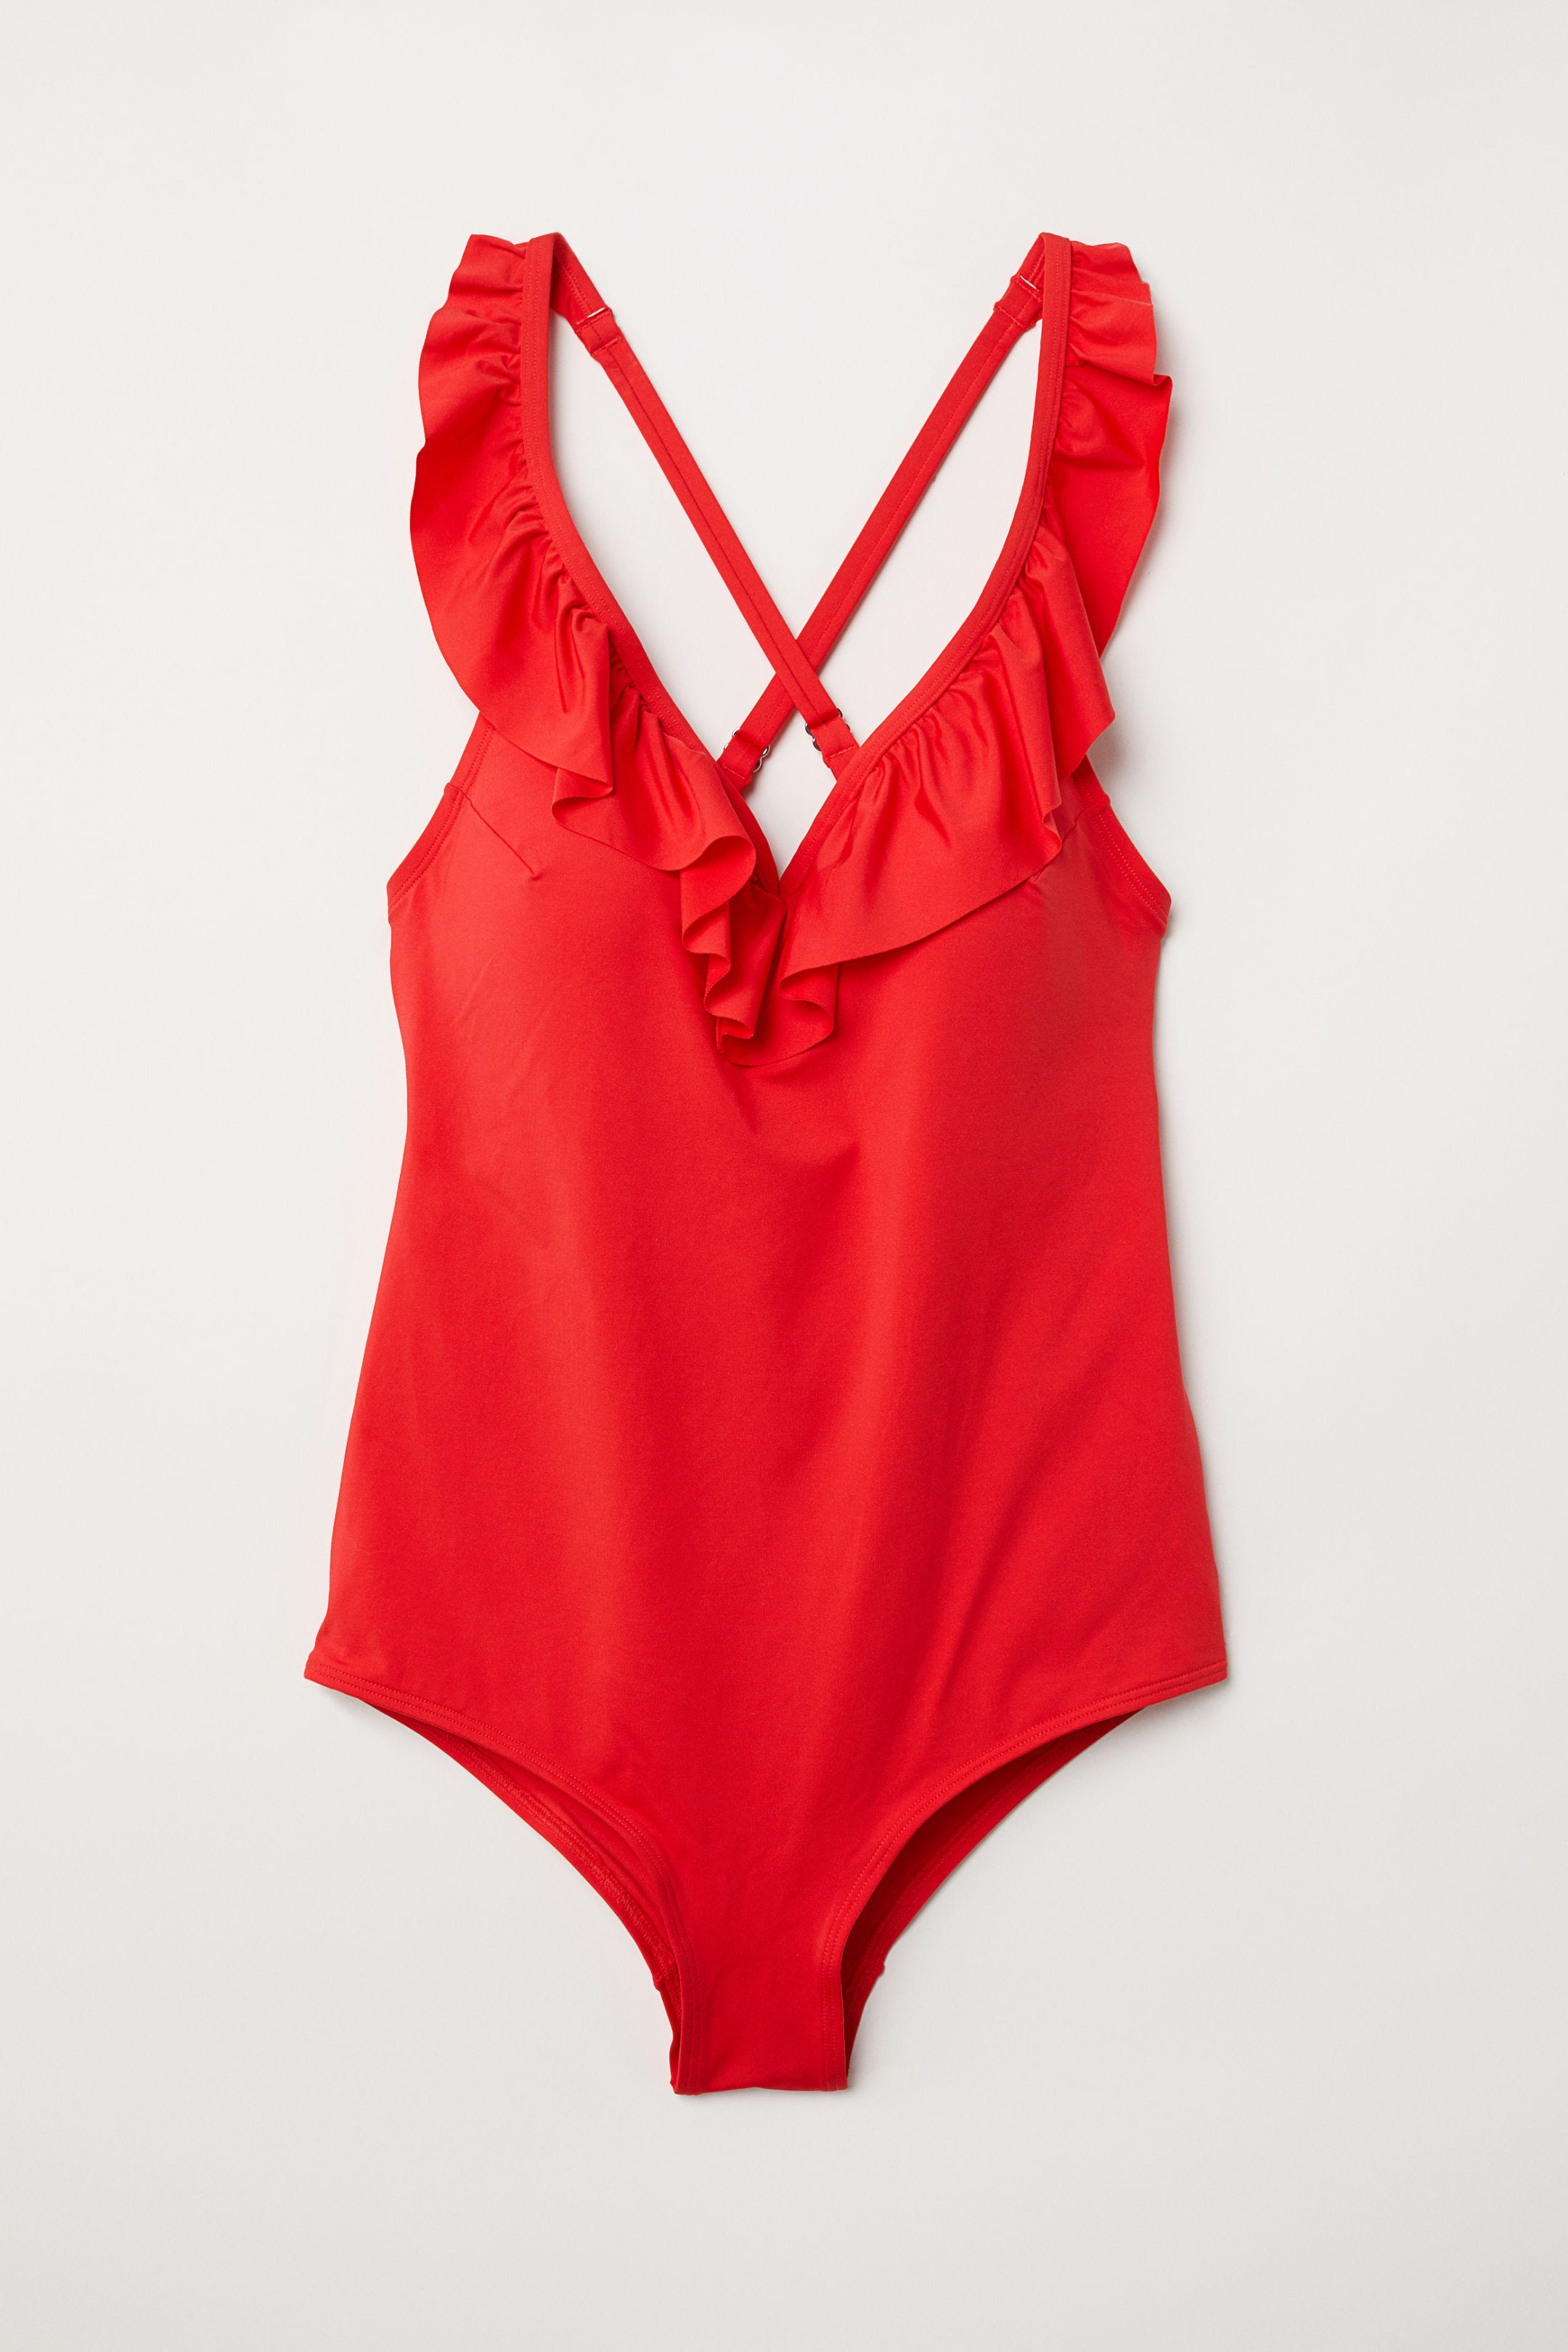 8ae1d51db1 HM New Swimsuits, Bikini One Pieces